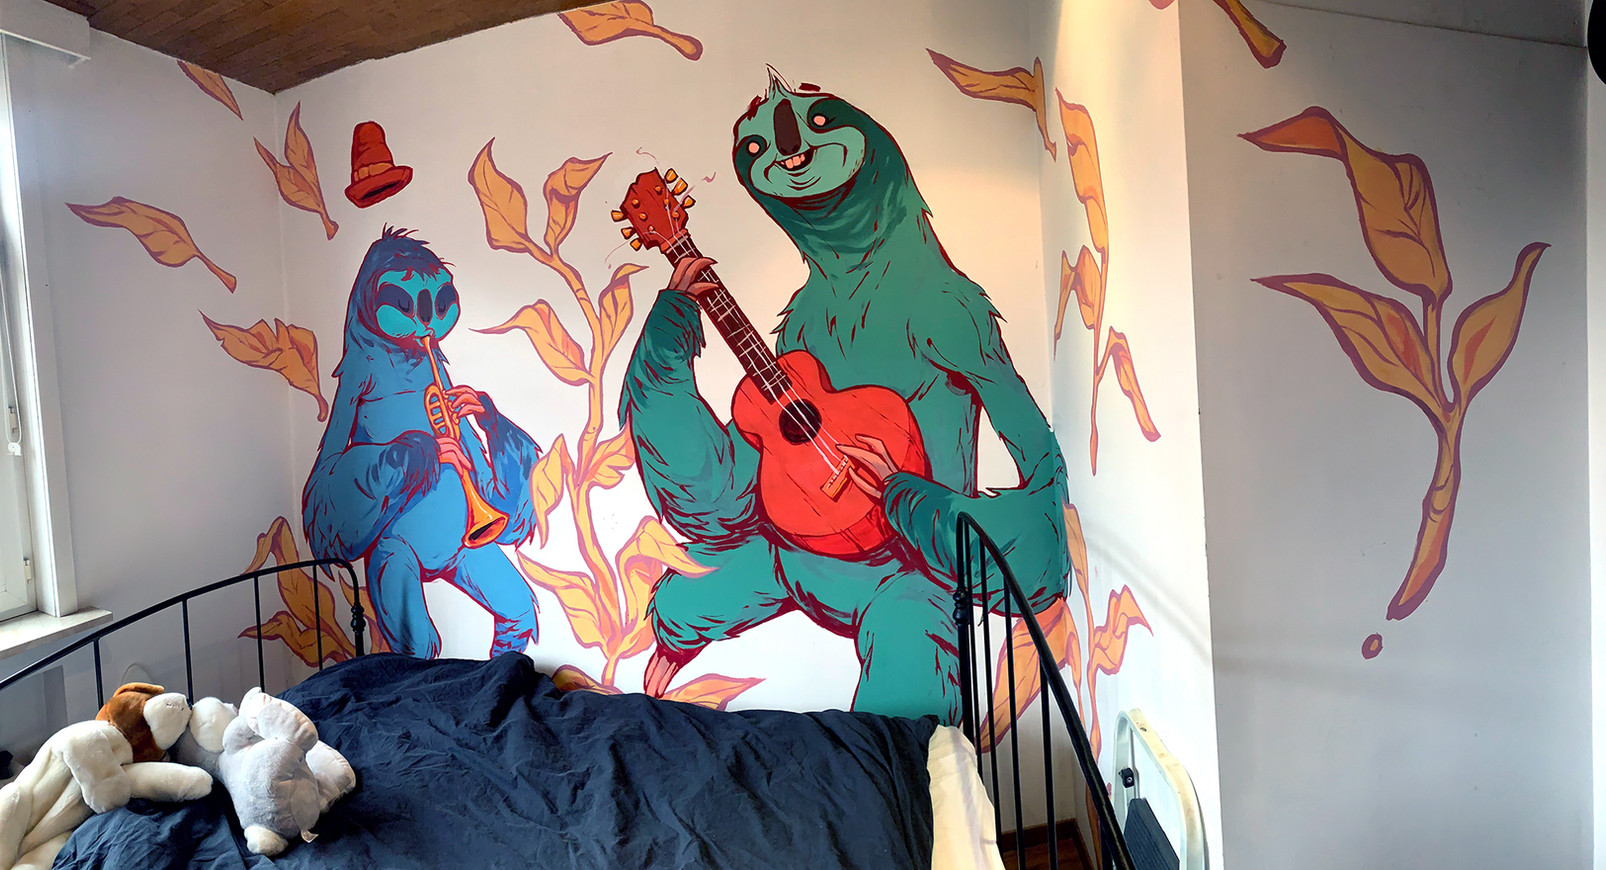 Sloths, music and skateboards.